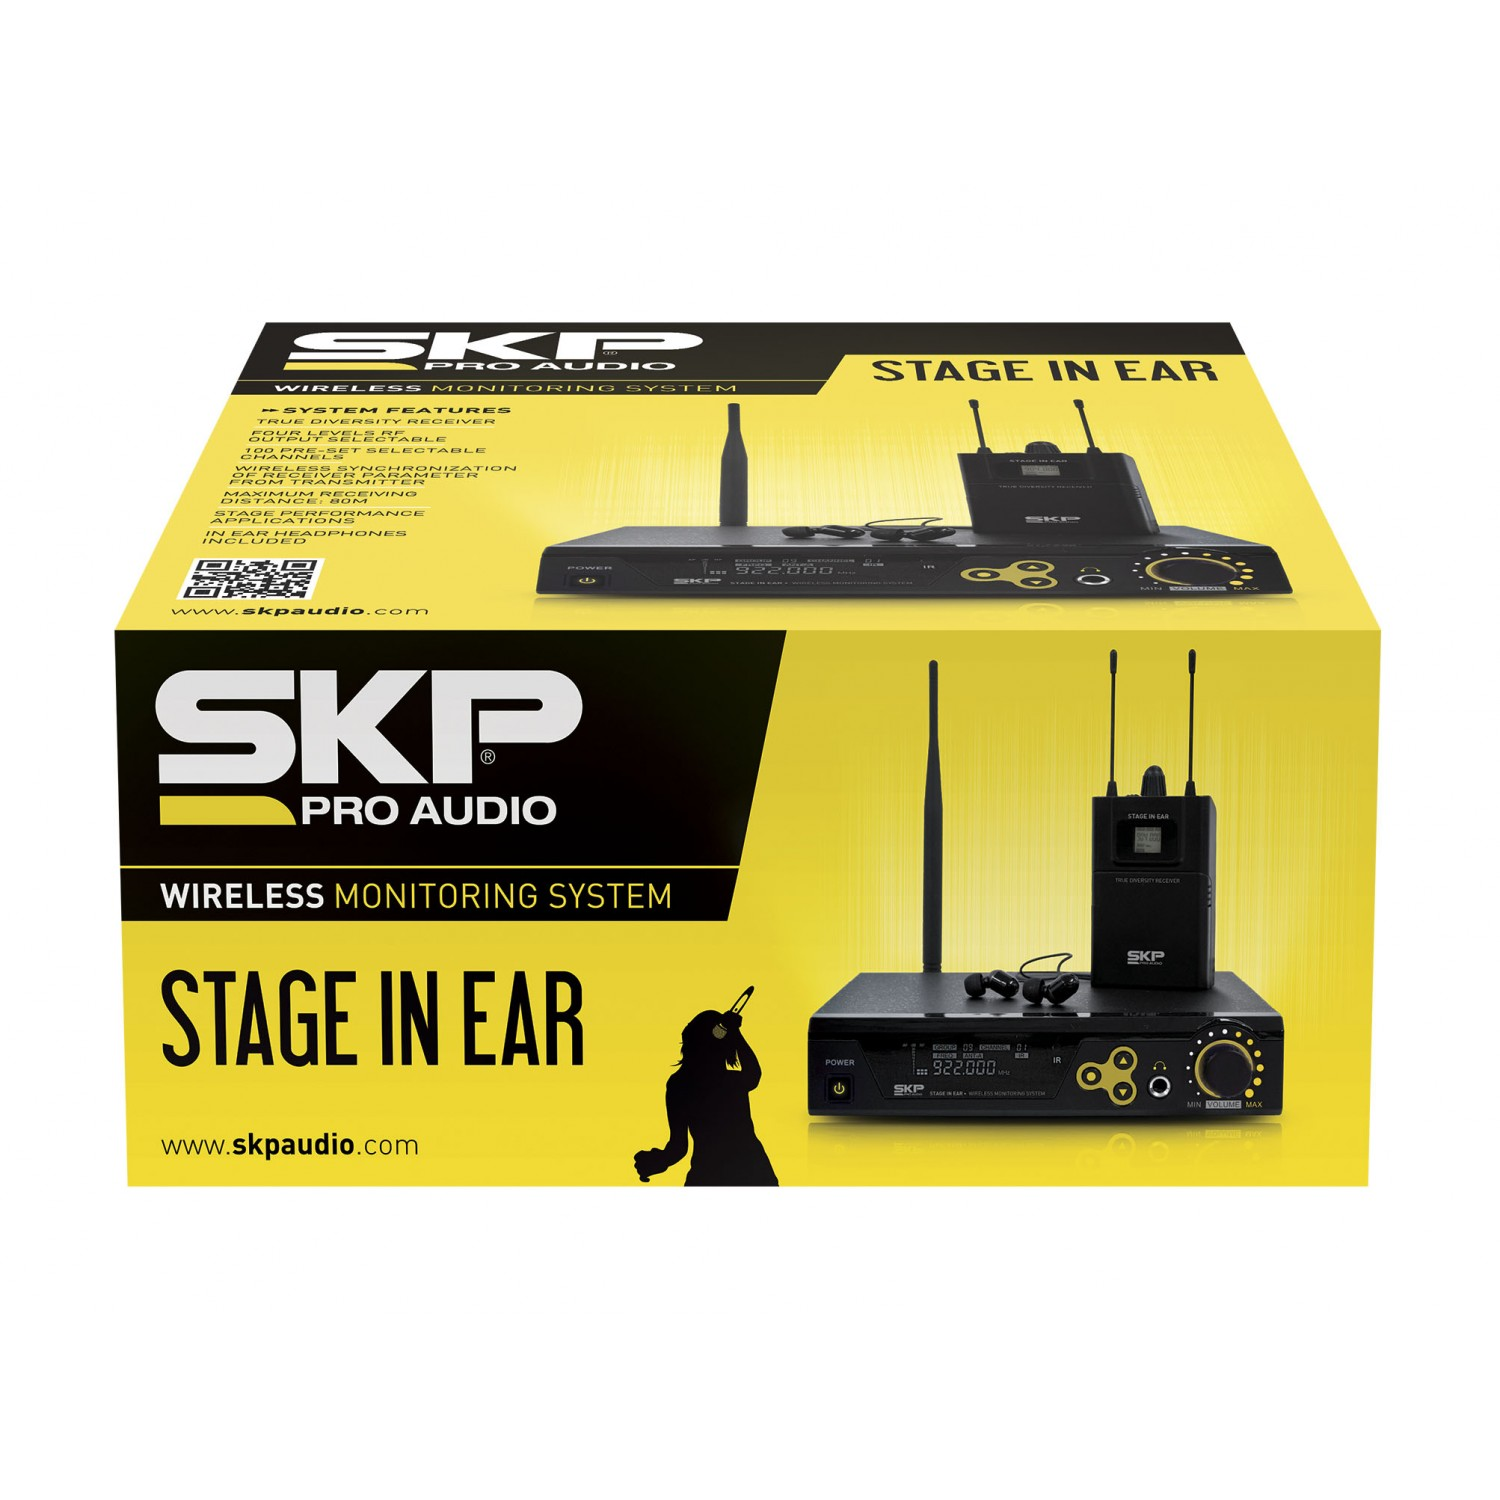 STAGE IN EAR